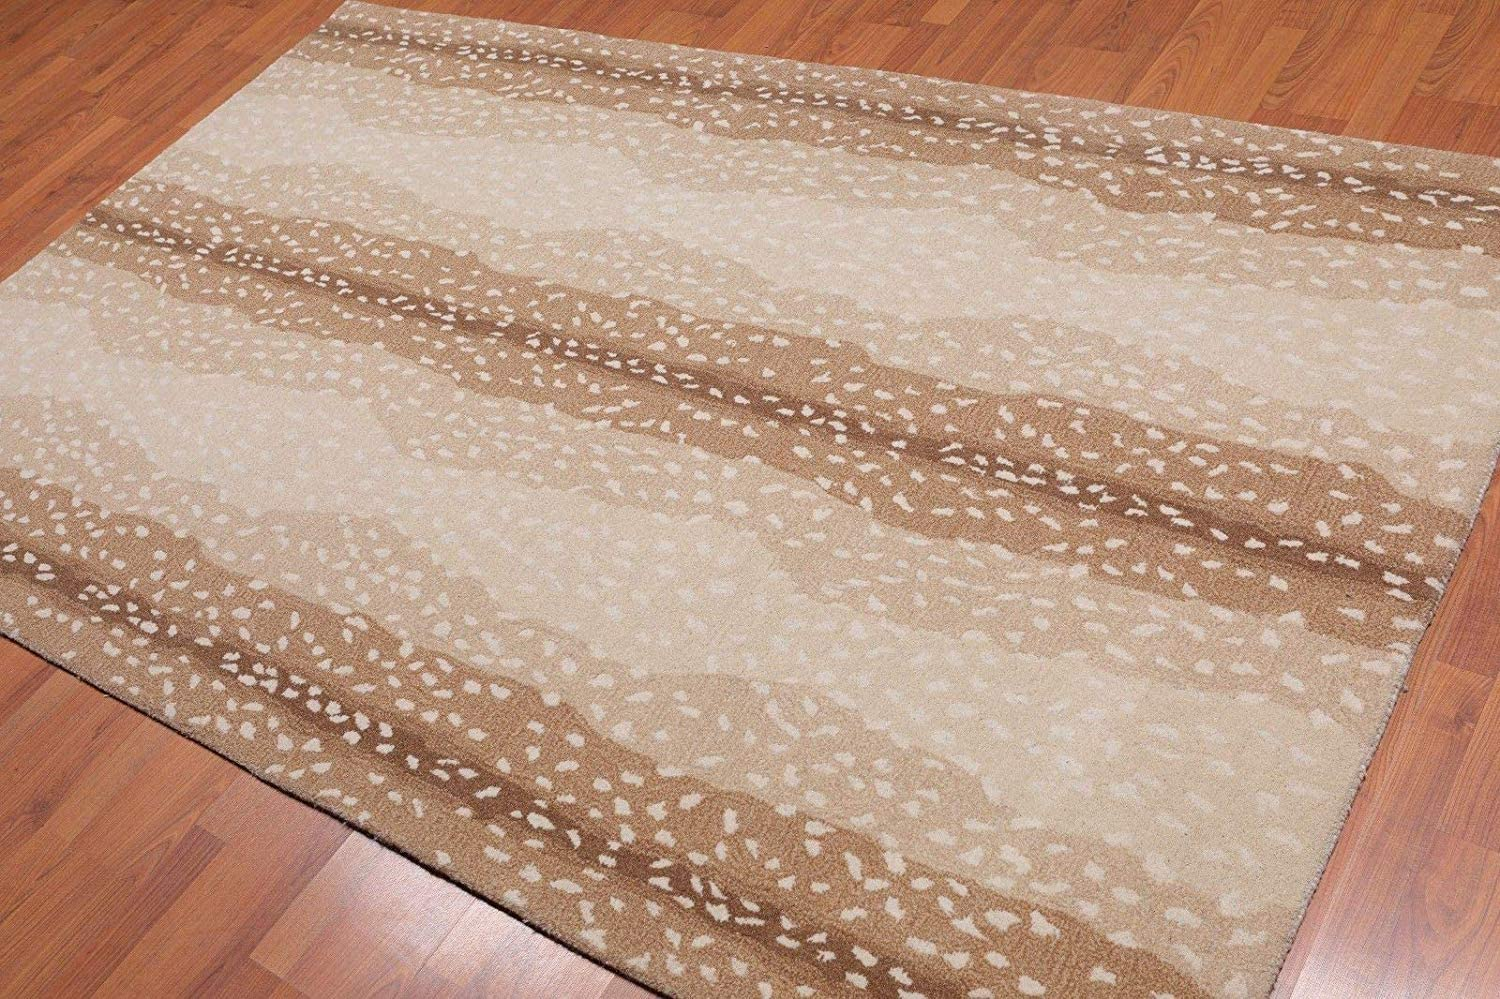 Old Hand Made Cheetah Challenge the lowest price of Japan ☆ Antelope Limited time sale Area Woolen Rugs Contemporary 8'